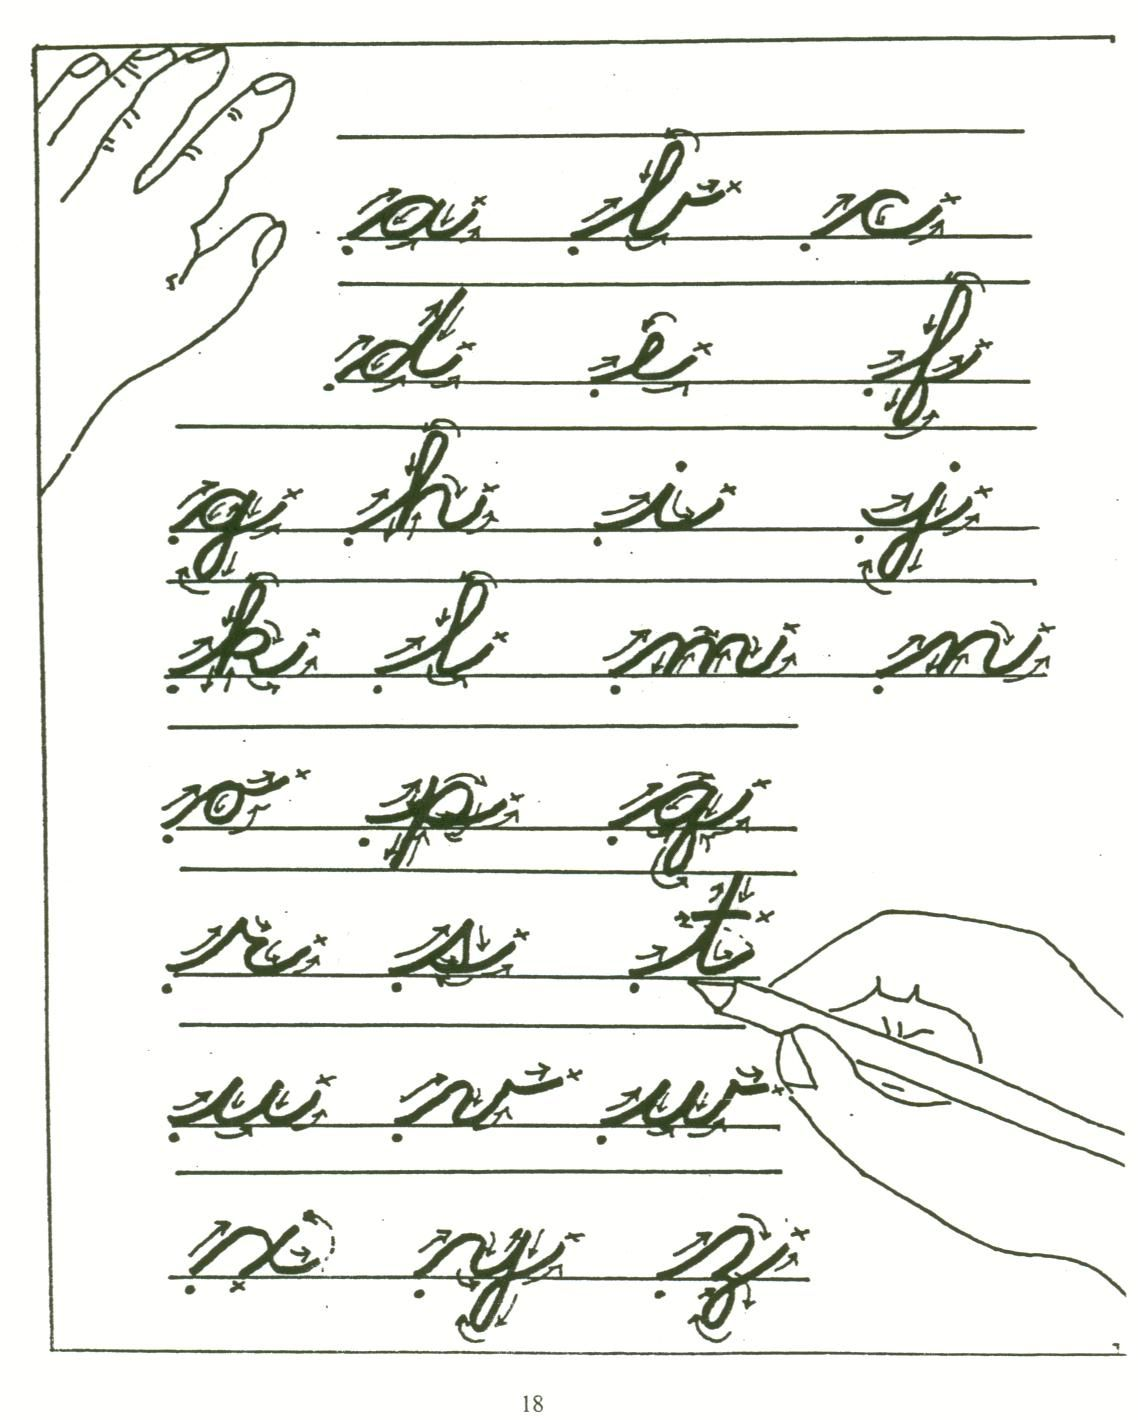 Worksheet How To Cursive 1000 images about handwriting on pinterest cursive improve your and handwriting